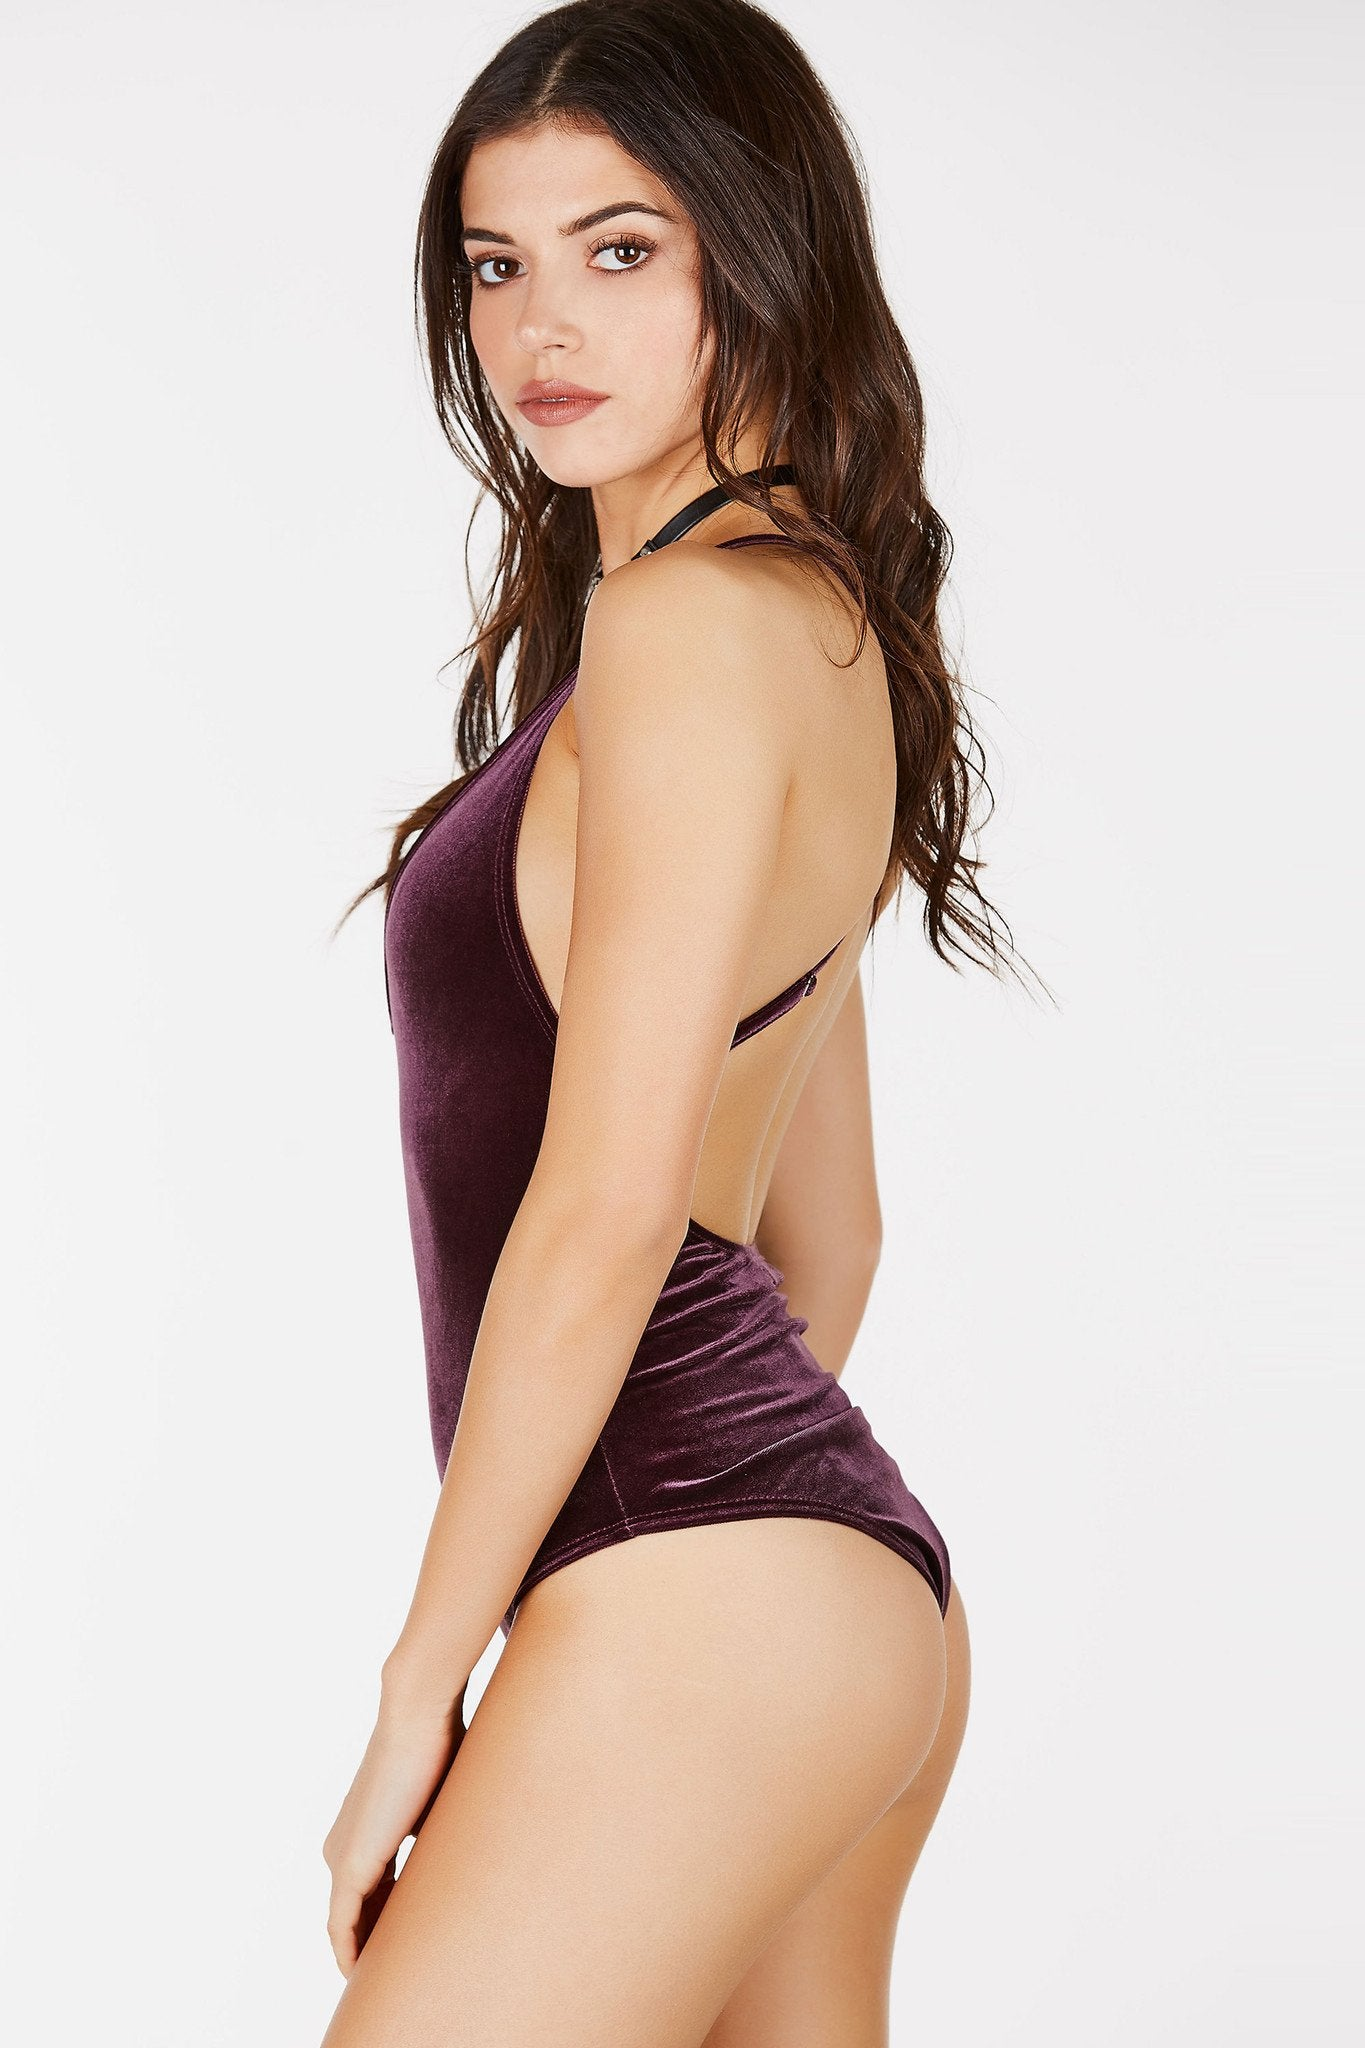 Sleeveless bodysuit with adjustable shoulder straps that criss crosses at the back. Velvet finish with V-neckline. Cheeky cut with snap button closure.